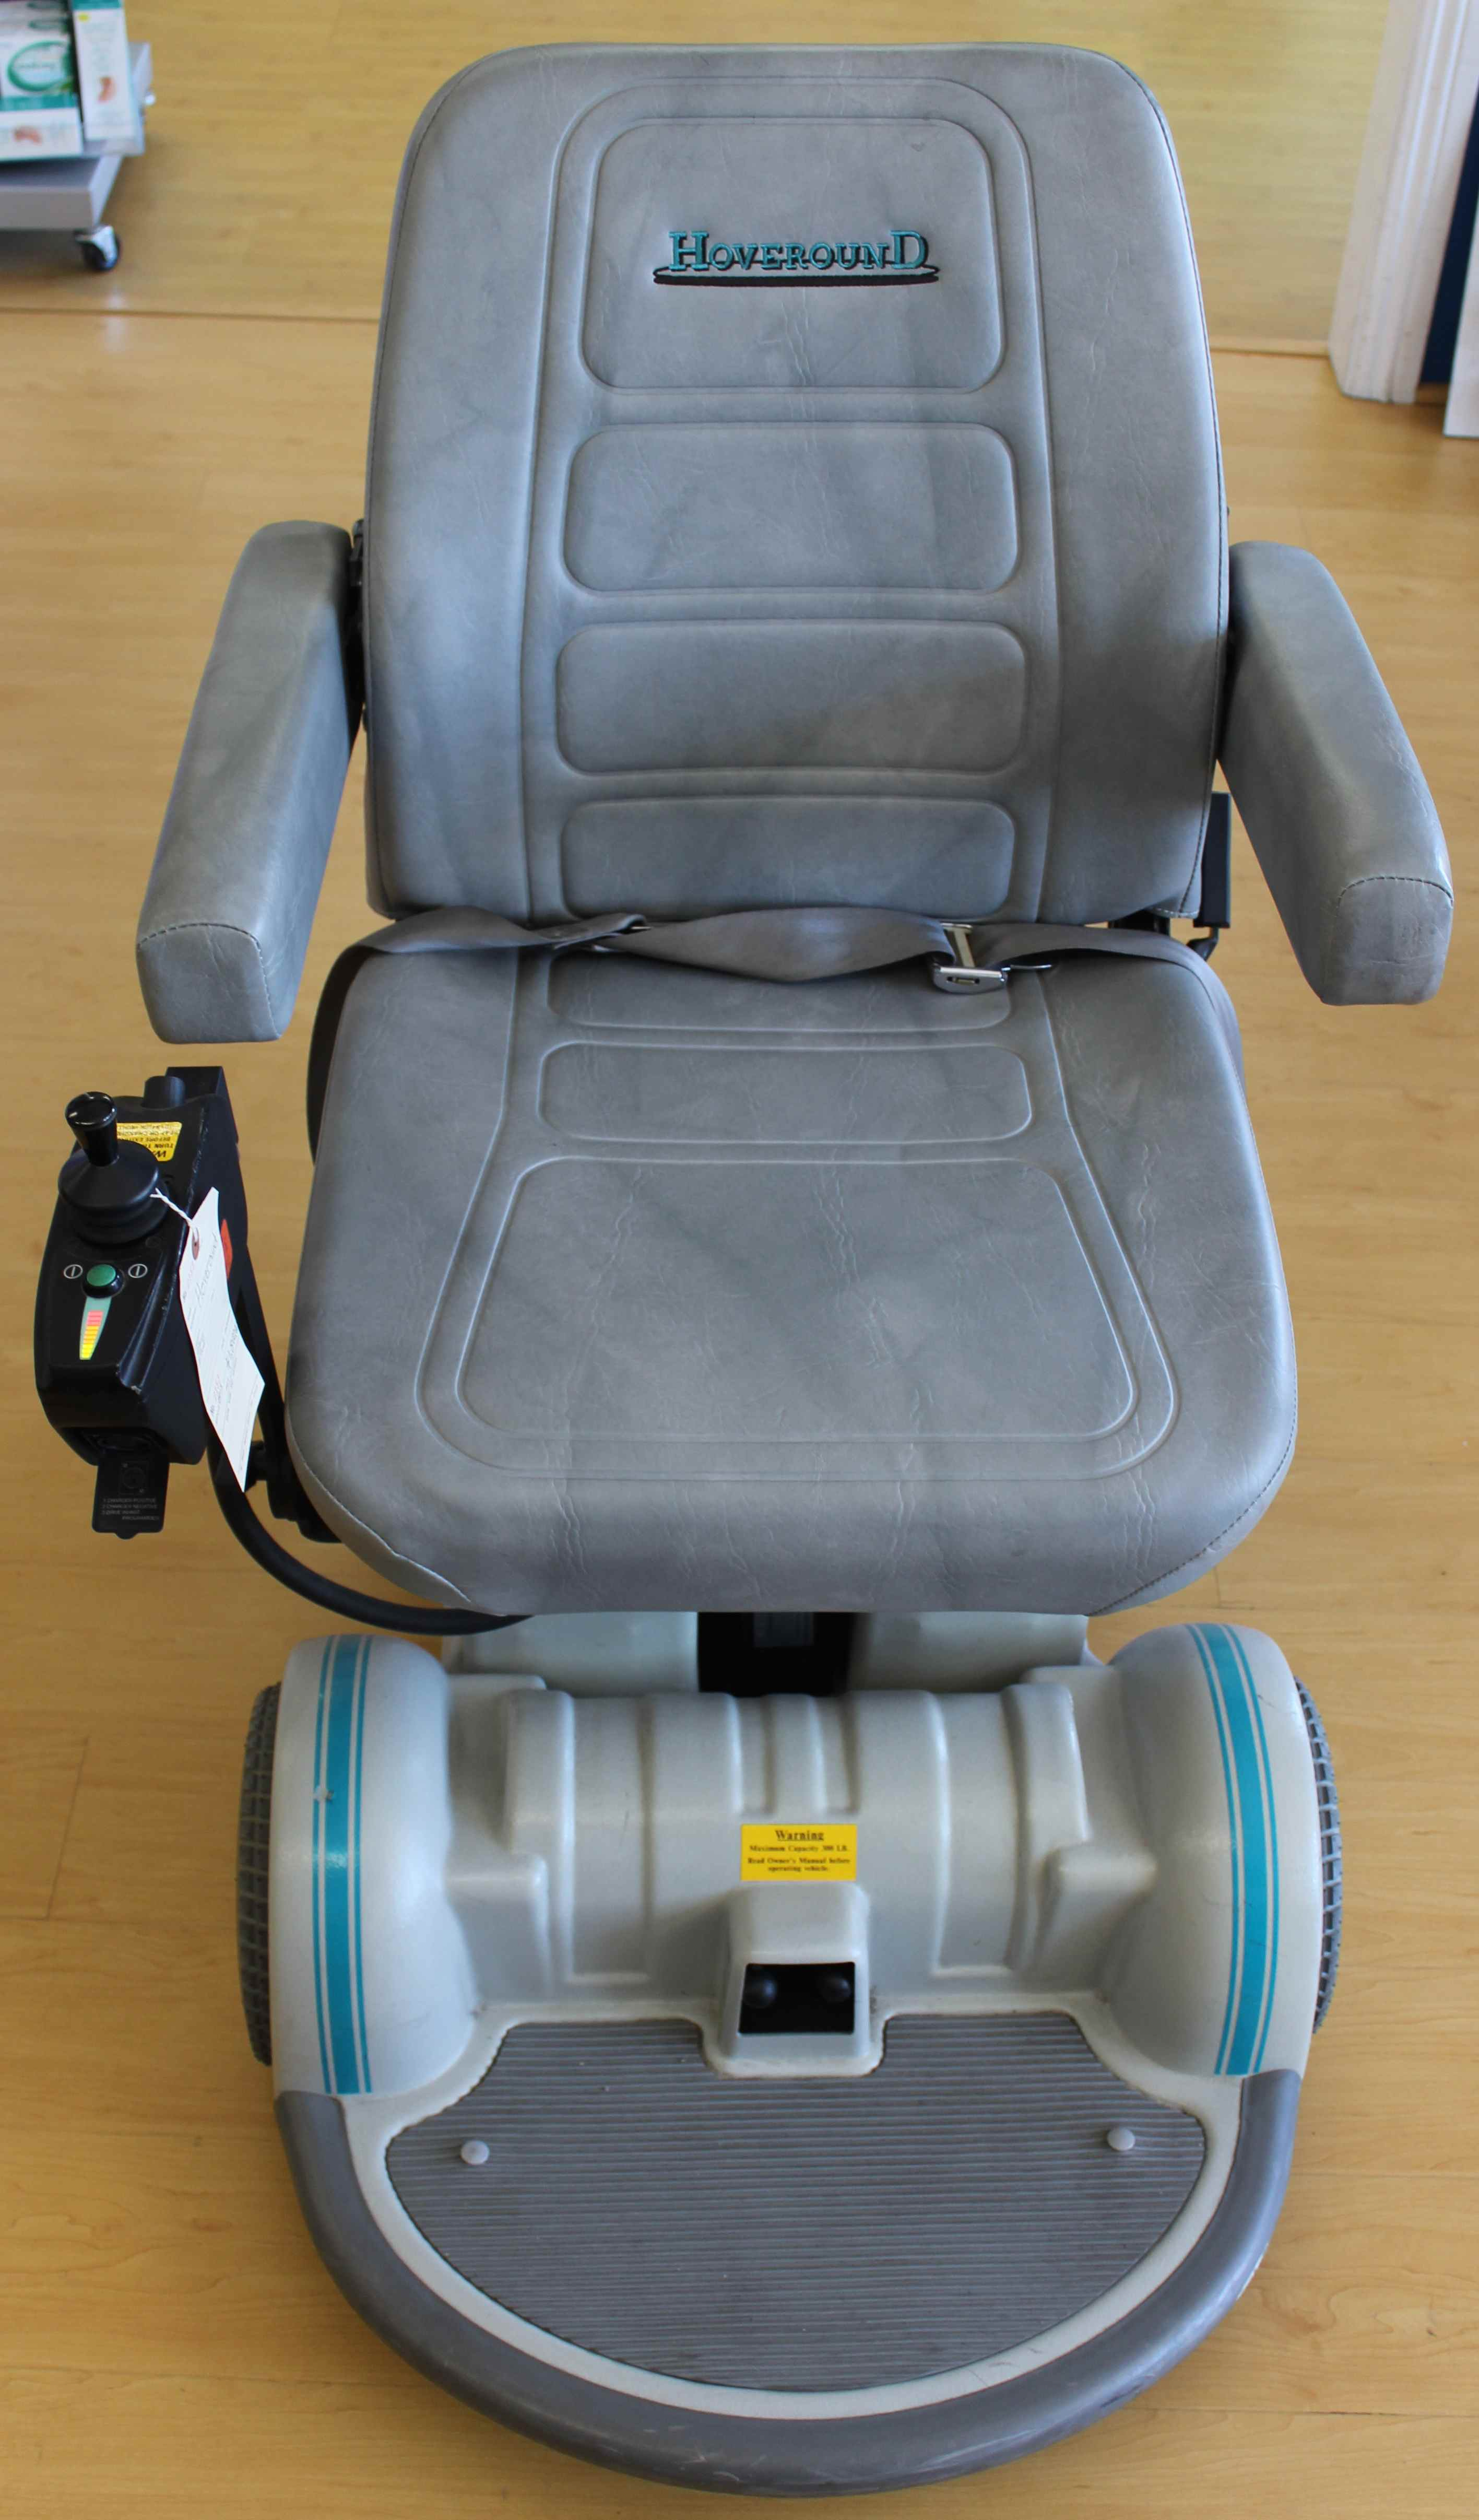 Hoveround Chair Used Medical Supplies And Devices Previously Owned